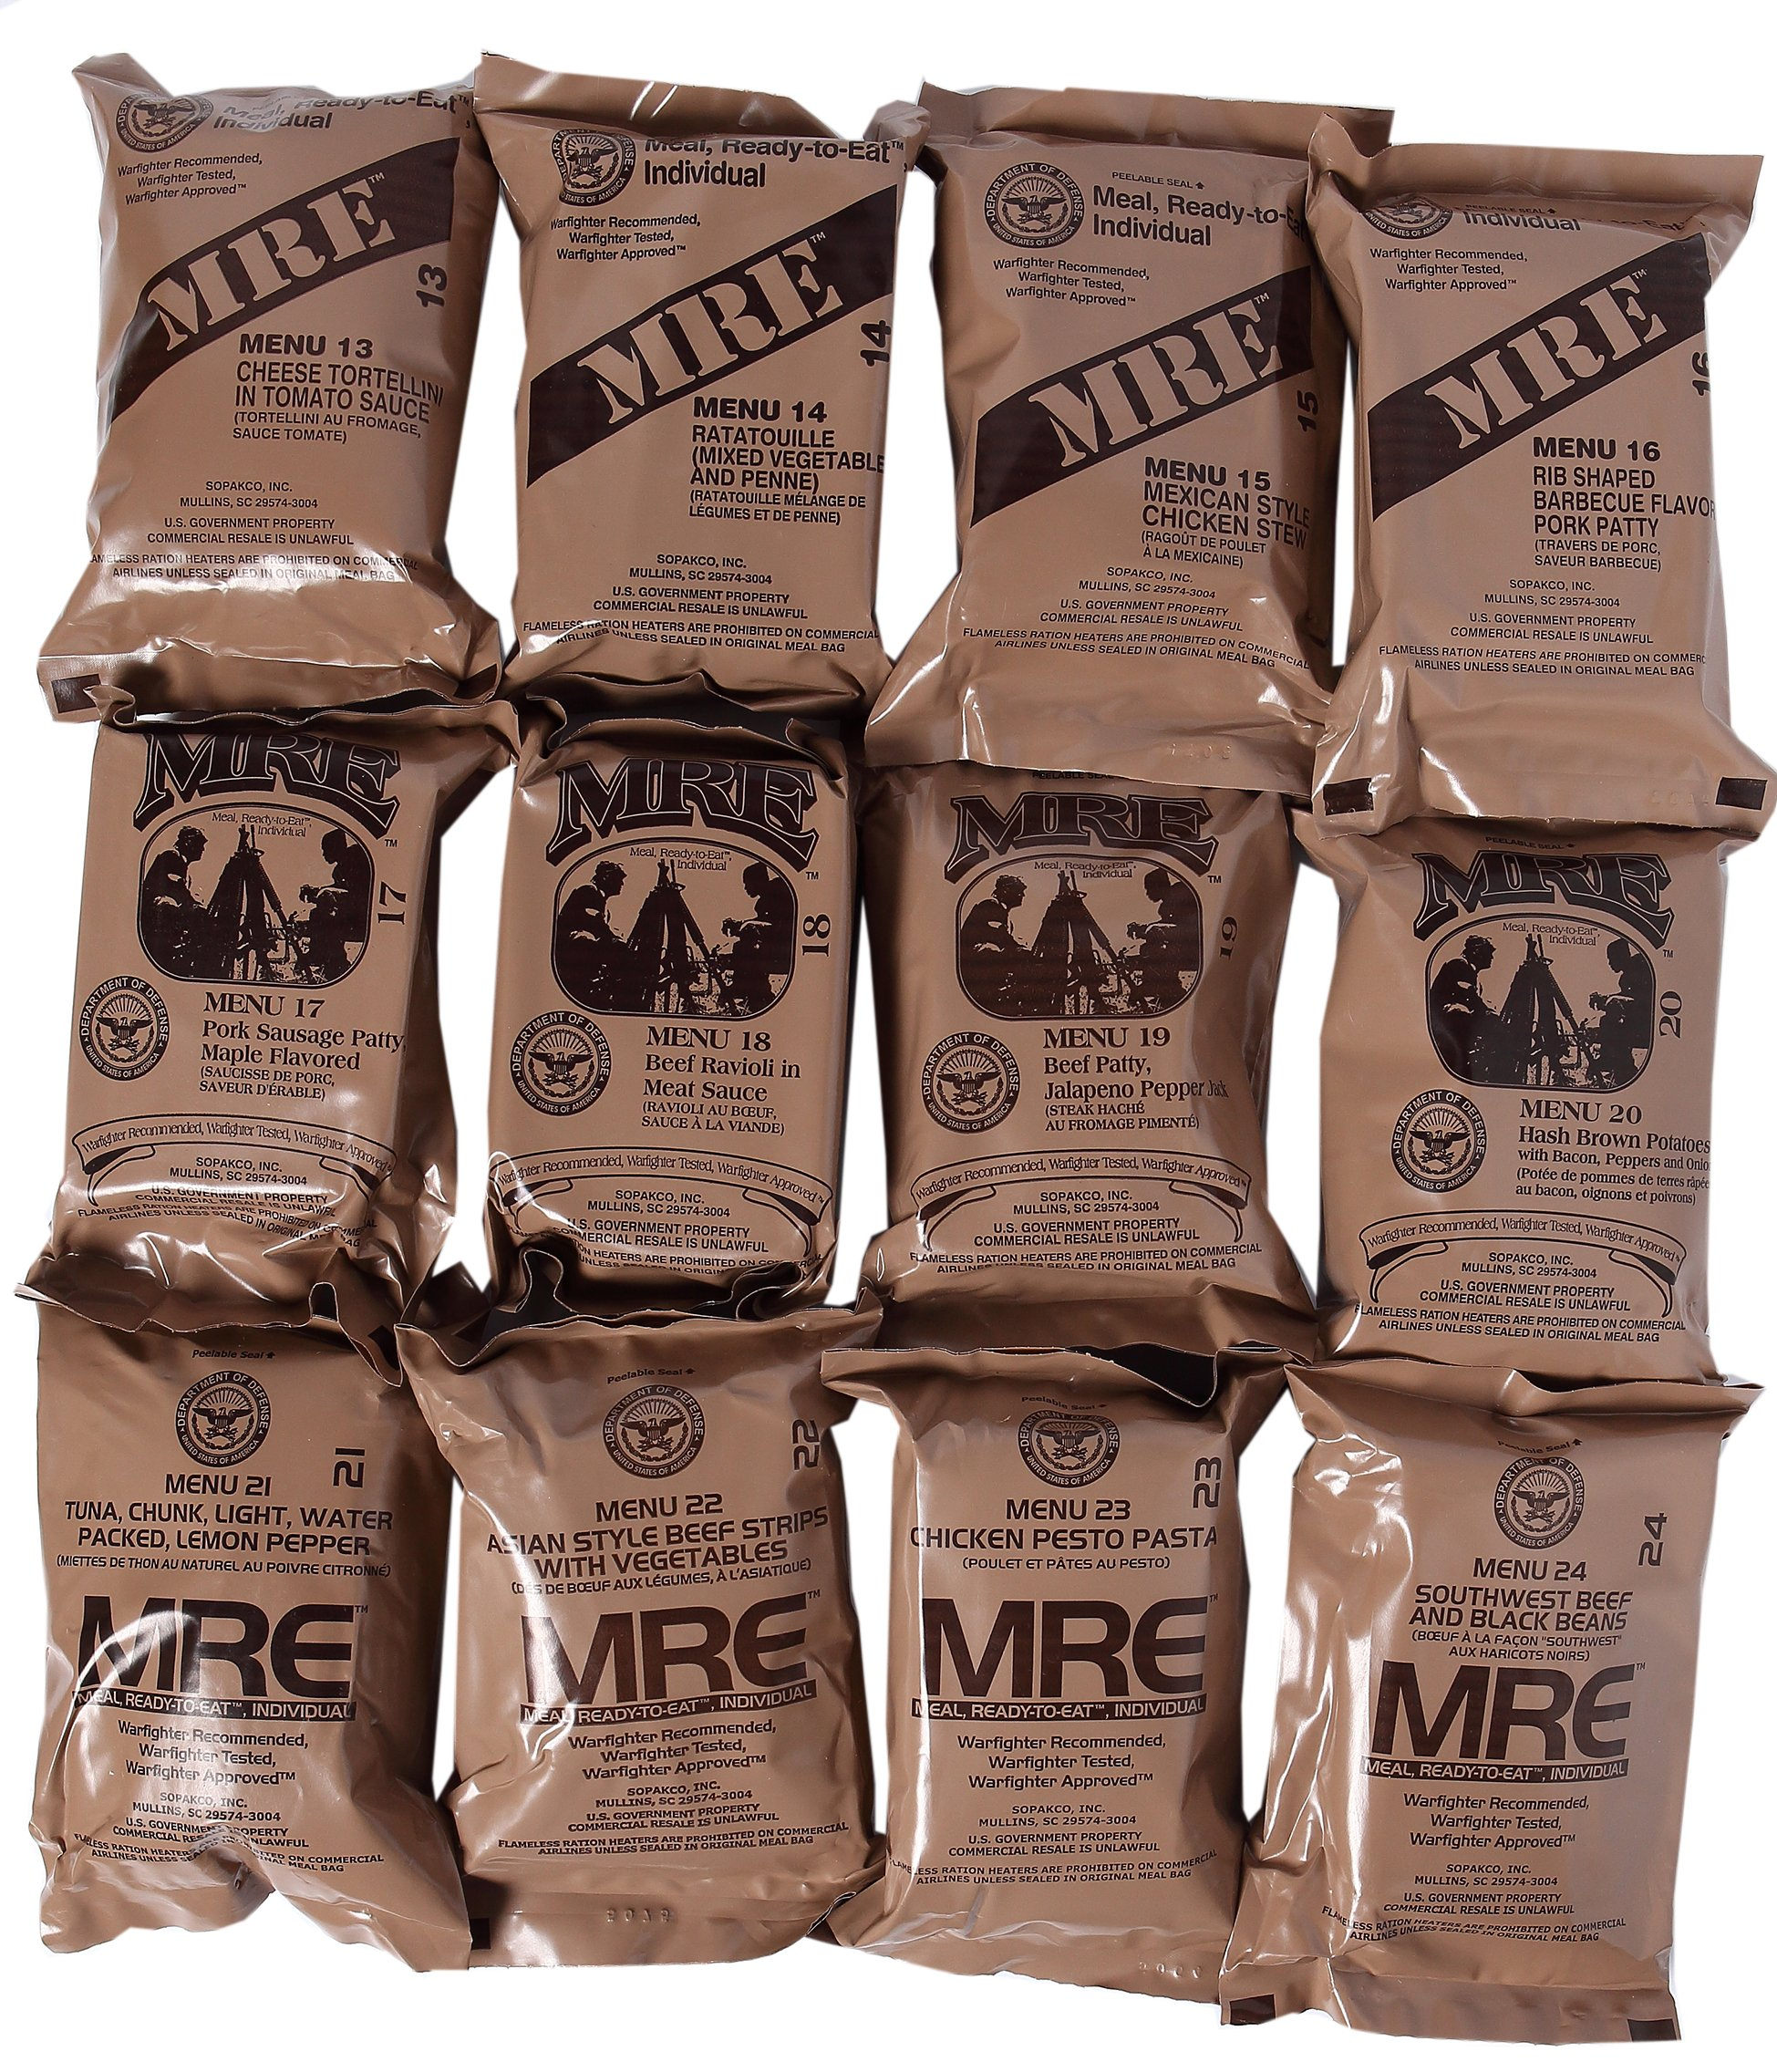 Western Frontier MRE 2019 Inspection Date Case A and Case B Bundle, 24 Meals Packed in 2016. Military Surplus Meal Ready to Eat. by Western Frontier (Image #3)